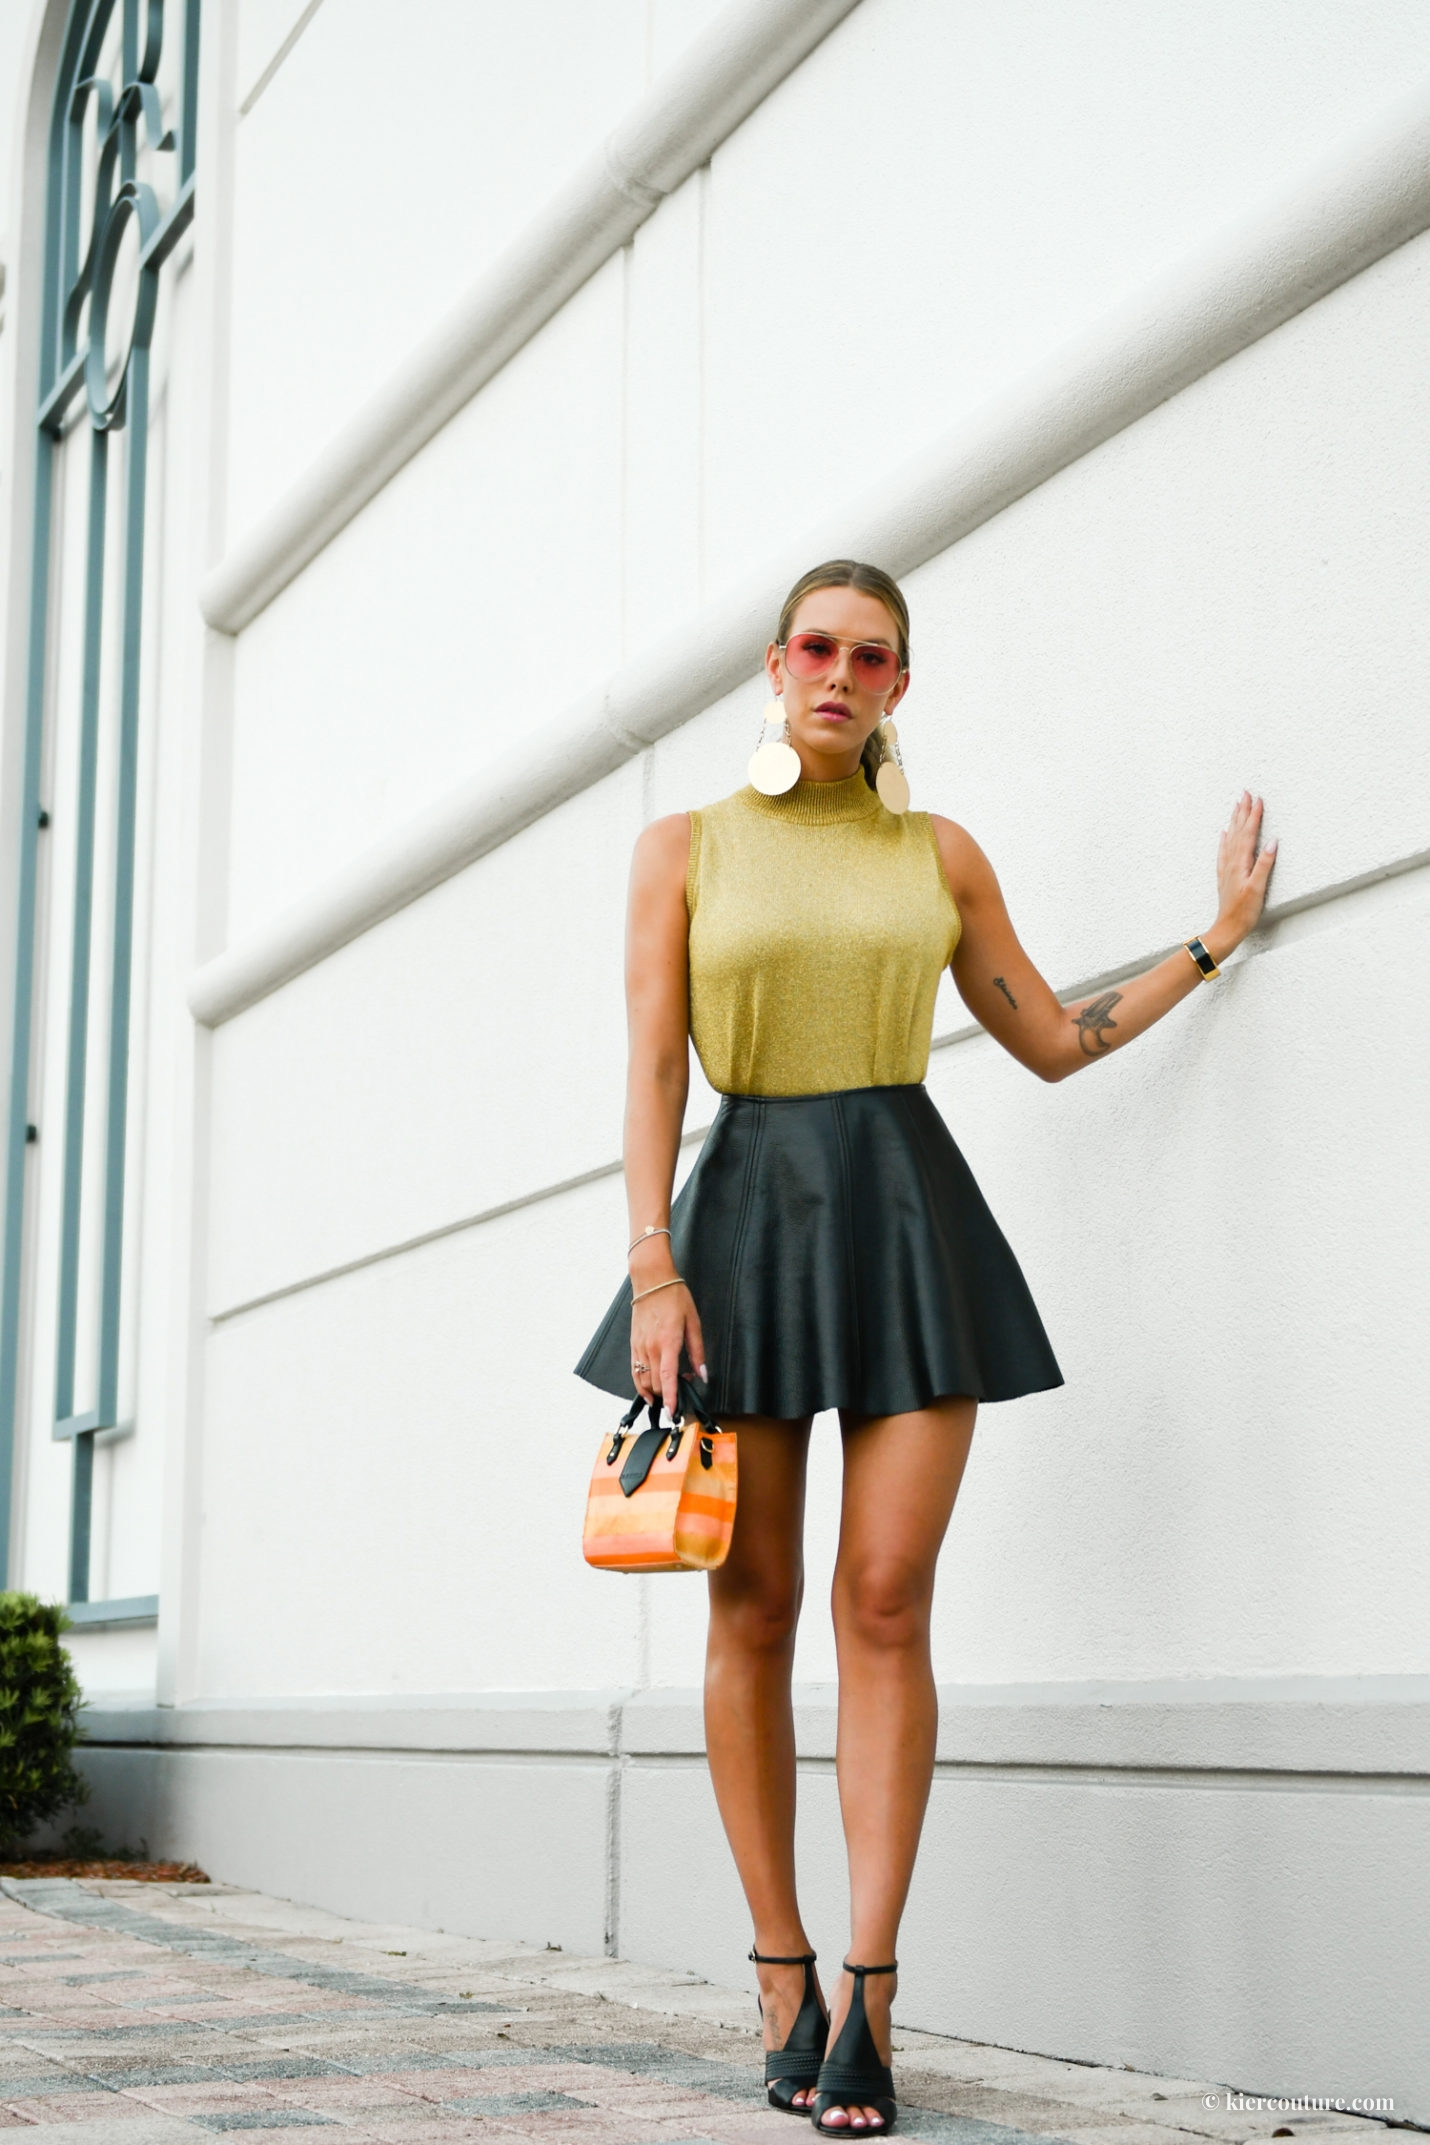 keir mccill in gold top and black skirt and FW style bag